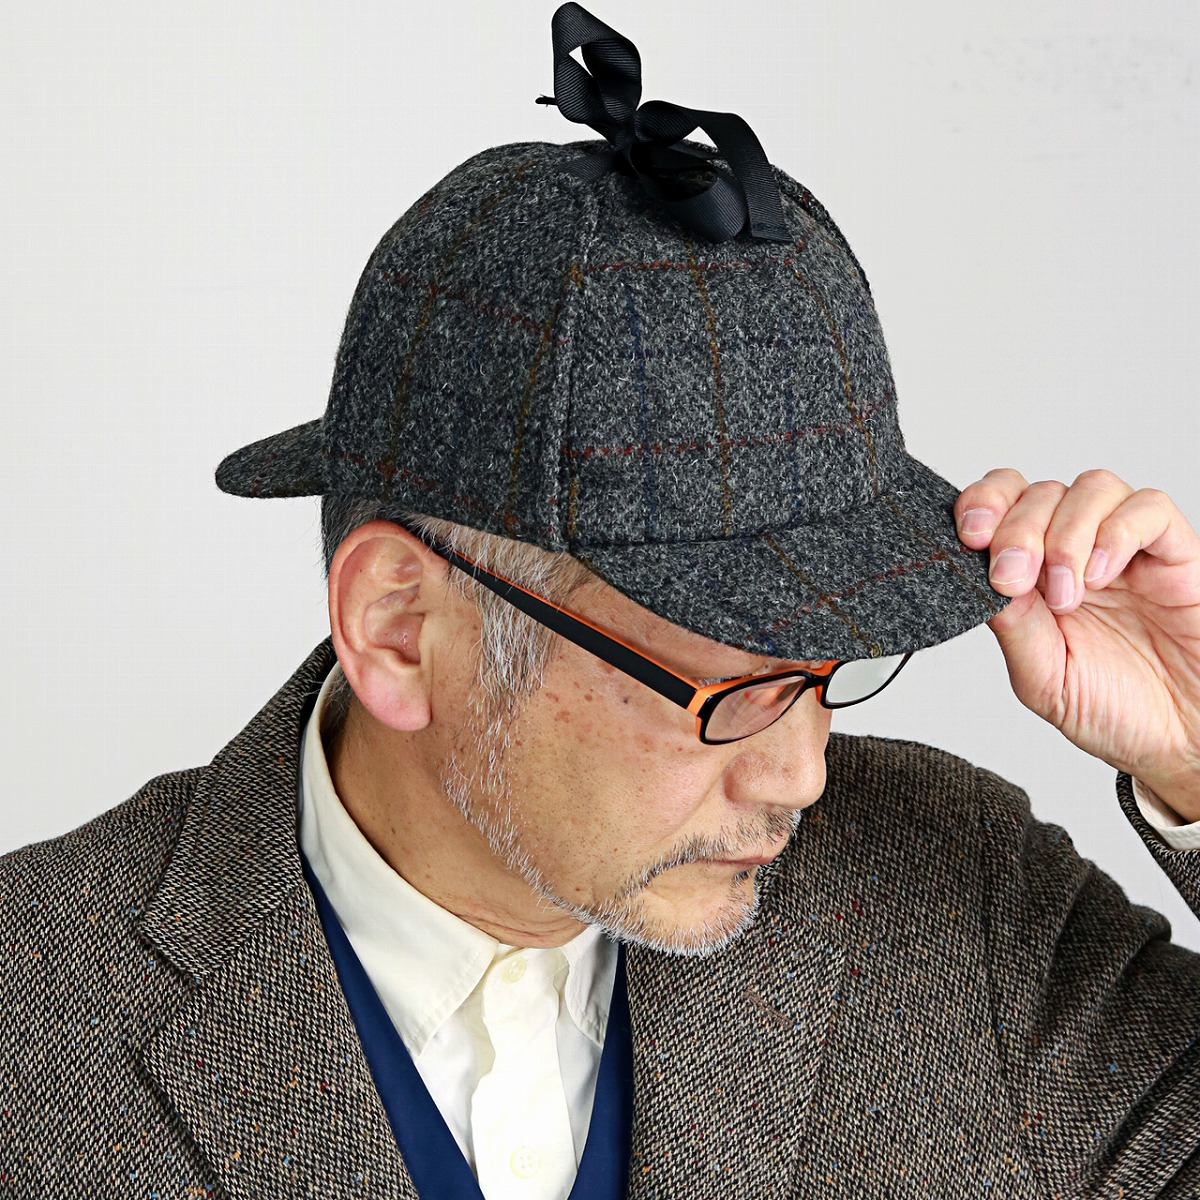 46fd26e4b8e ELEHELM HAT STORE  1303 model X HB310-A4 ディアストーカーカシュケット fashion classical    gray system  deerstalker hat  man Christmas gift present made in ...